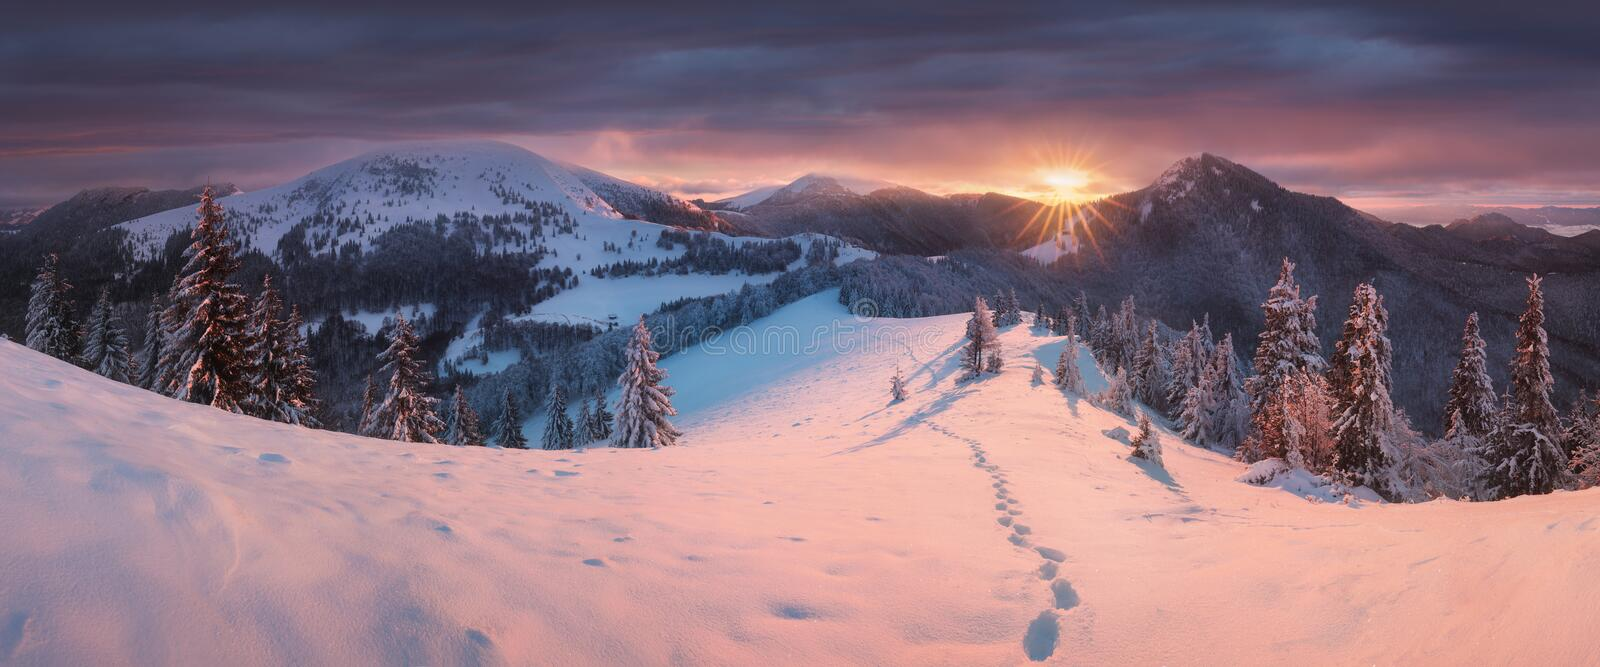 Panoramic view of beautiful winter wonderland mountain scenery in evening light at sunset. Mountains above the clouds. Christmas. Panoramic view of beautiful royalty free stock photo